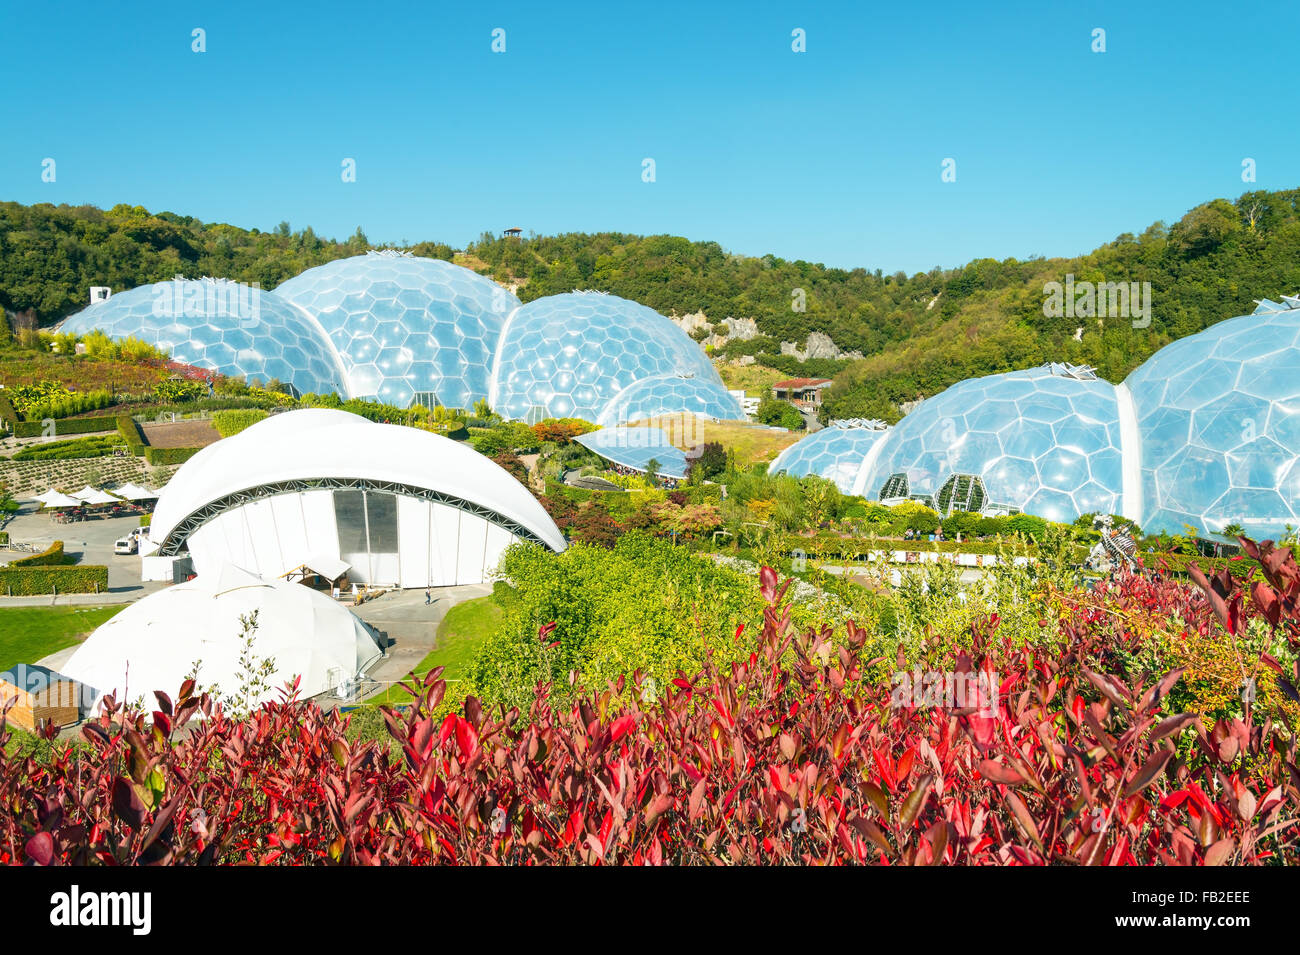 View Dome of the Eden Project in Cornwall. - Stock Image